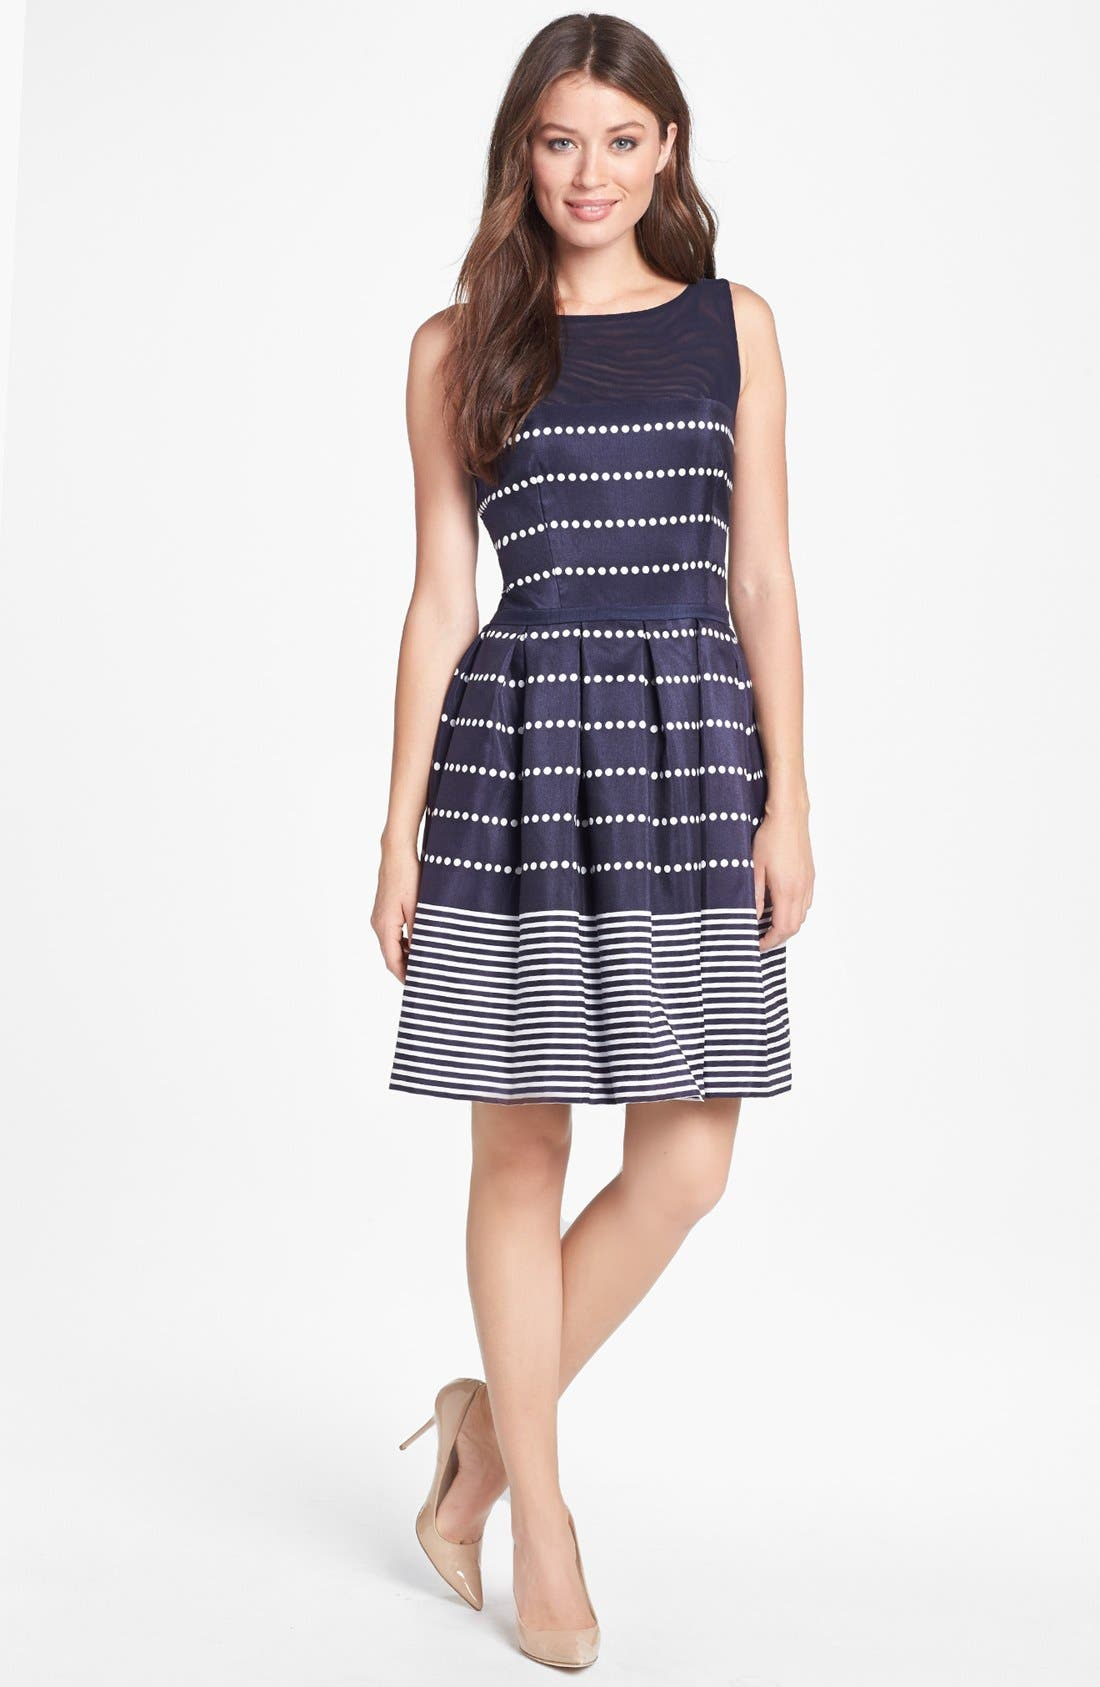 Alternate Image 1 Selected - Taylor Dresses Polka Dot Stripe Fit & Flare Dress